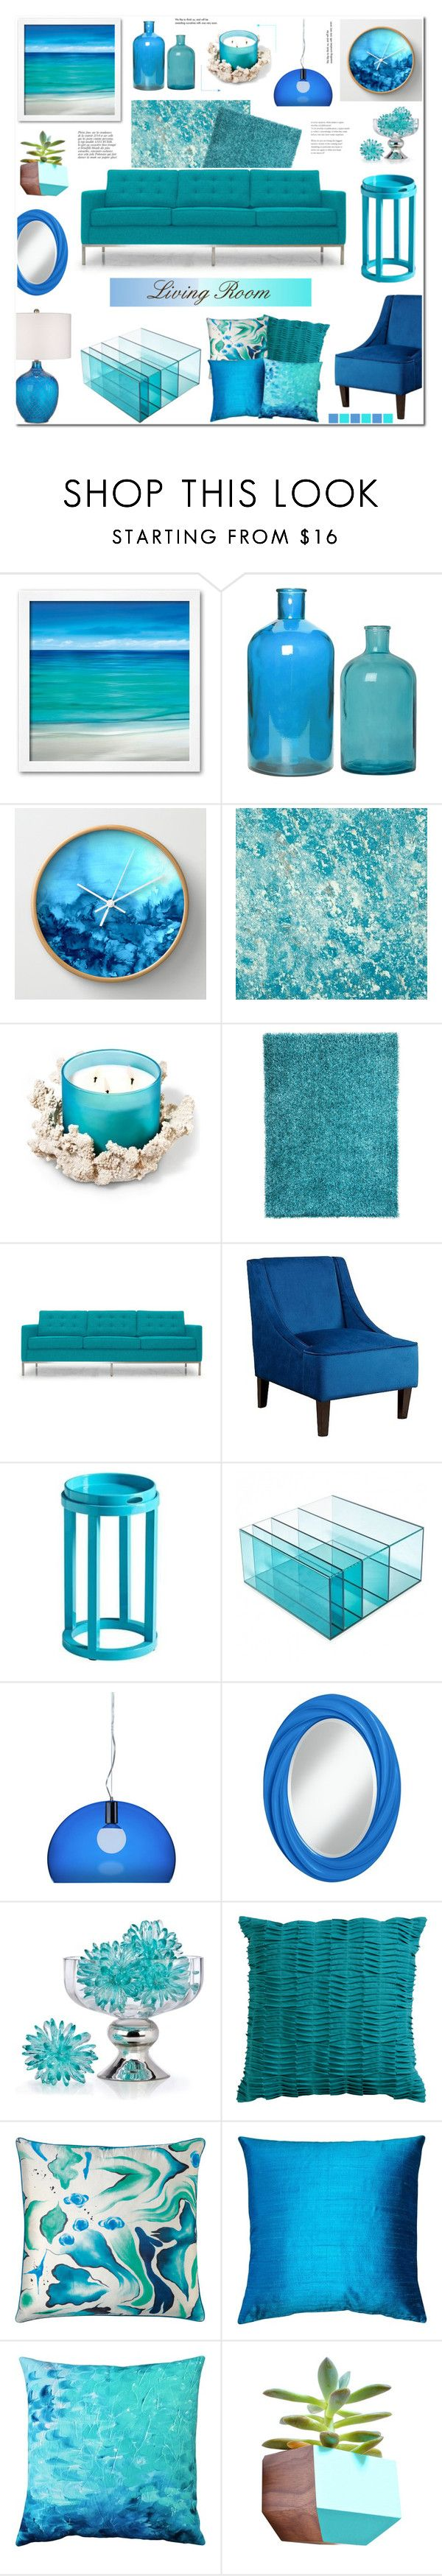 """Living Room"" by anyasdesigns ❤ liked on Polyvore featuring interior, interiors, interior design, home, home decor, interior decorating, Designers Guild, Dot & Bo, Joybird Furniture and Abbyson Living"